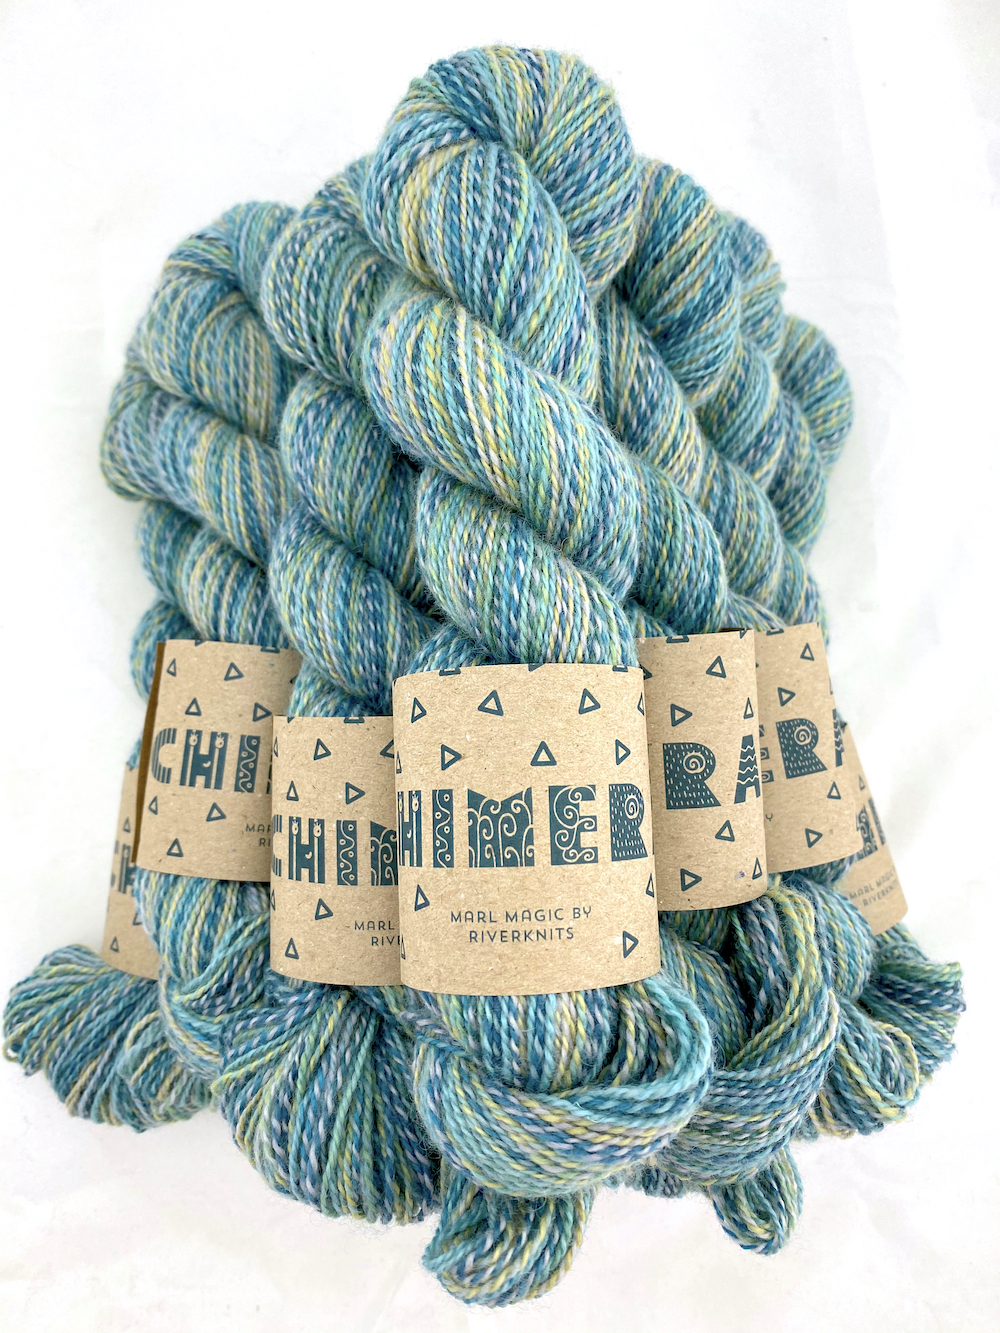 A pile of marled yarn in soft teal, blue, and a tiny bit of sandy yellow.